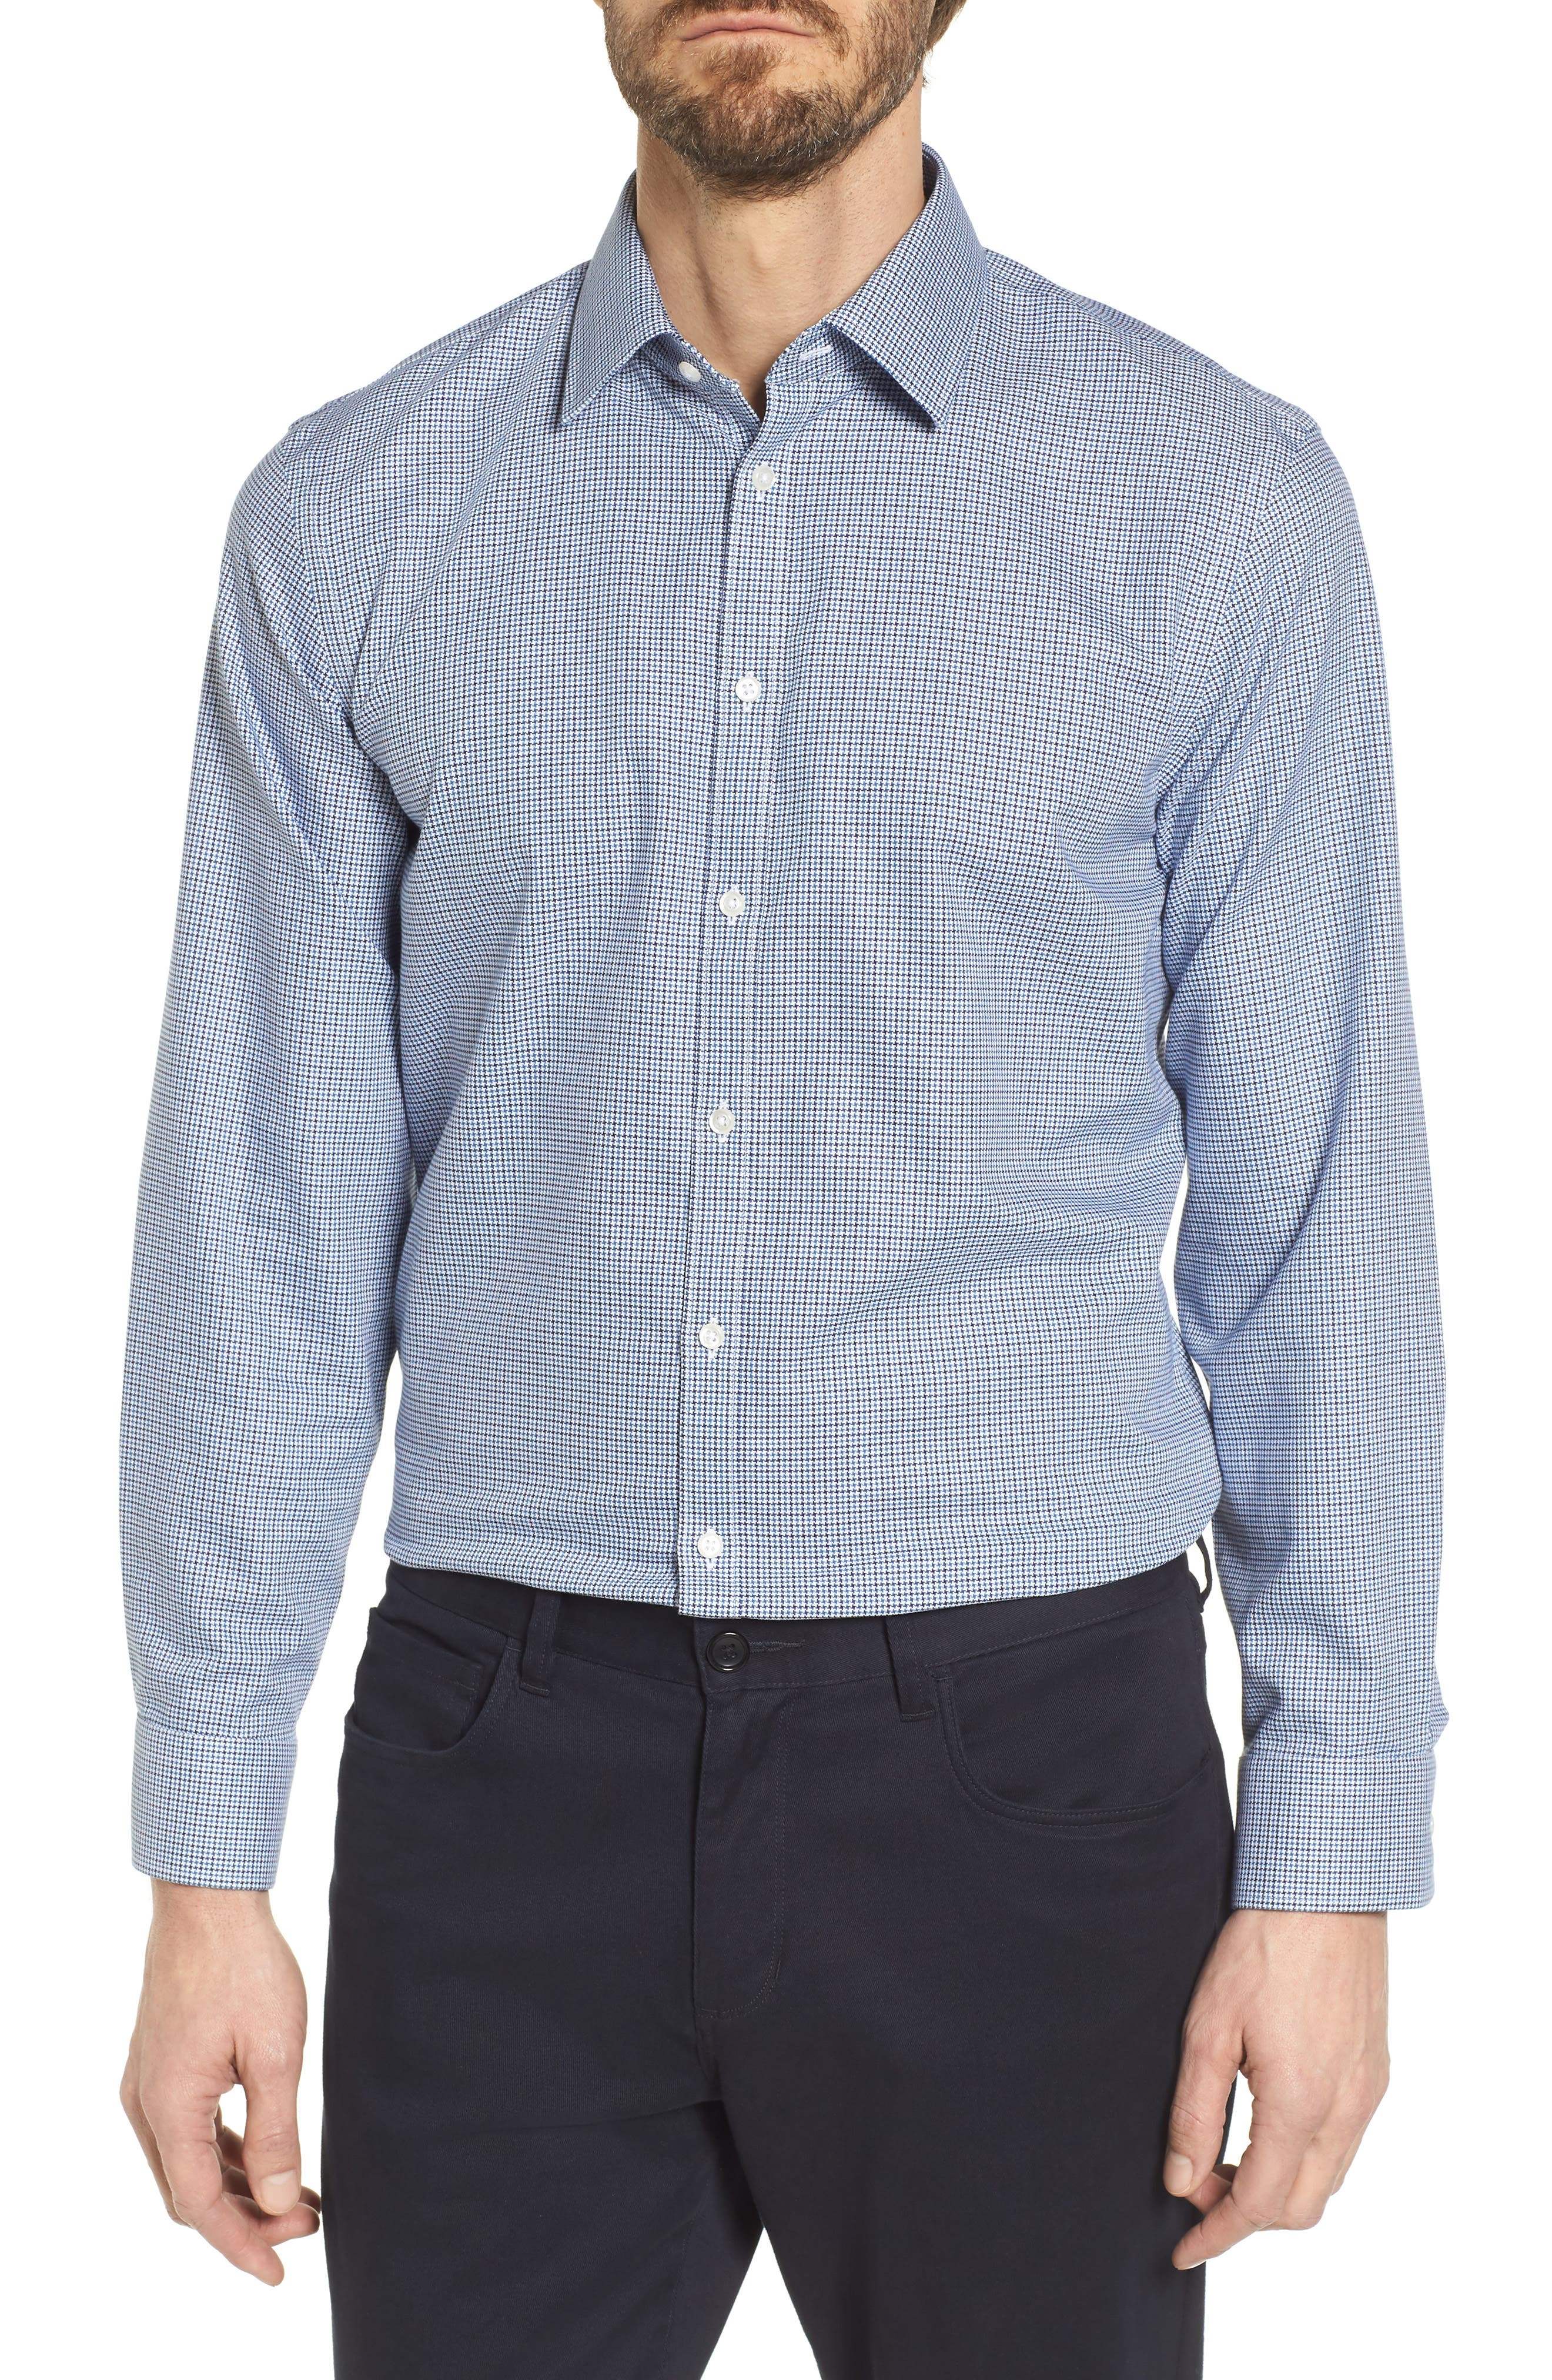 Smartcare<sup>™</sup> Extra Trim Fit Houndstooth Dress Shirt,                             Main thumbnail 1, color,                             410